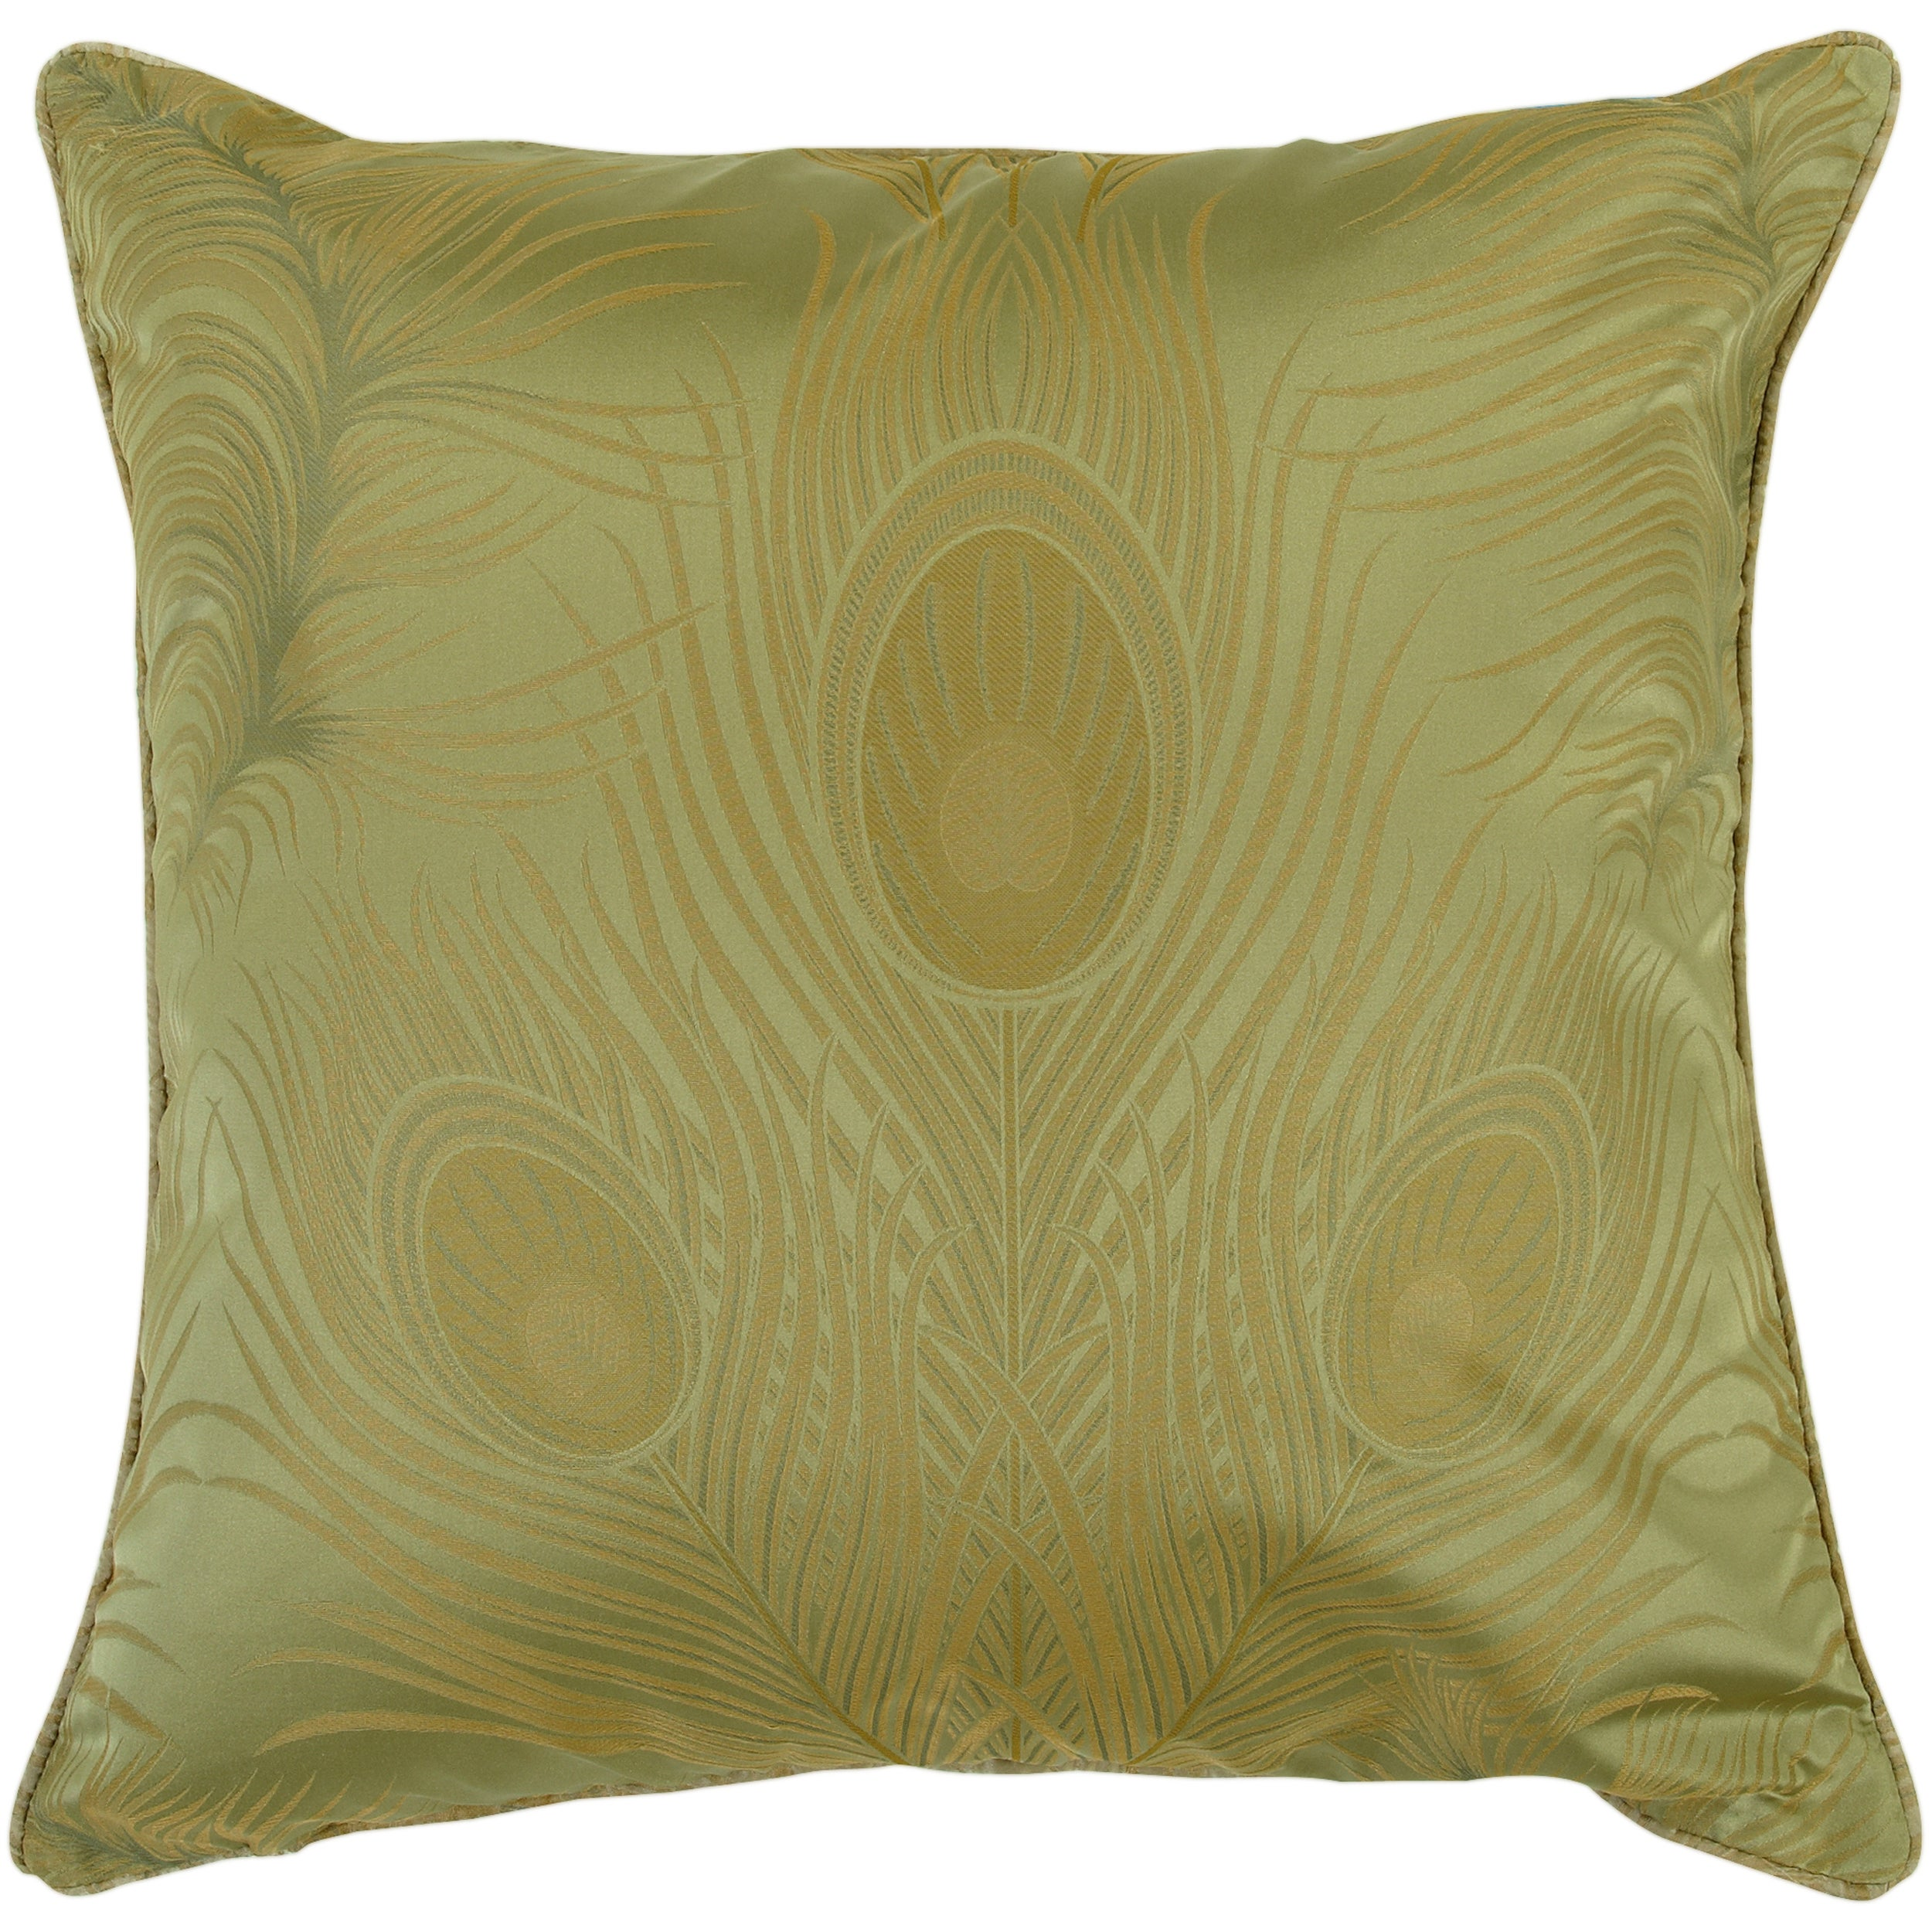 Presh 18-inch Down Decorative Pillow